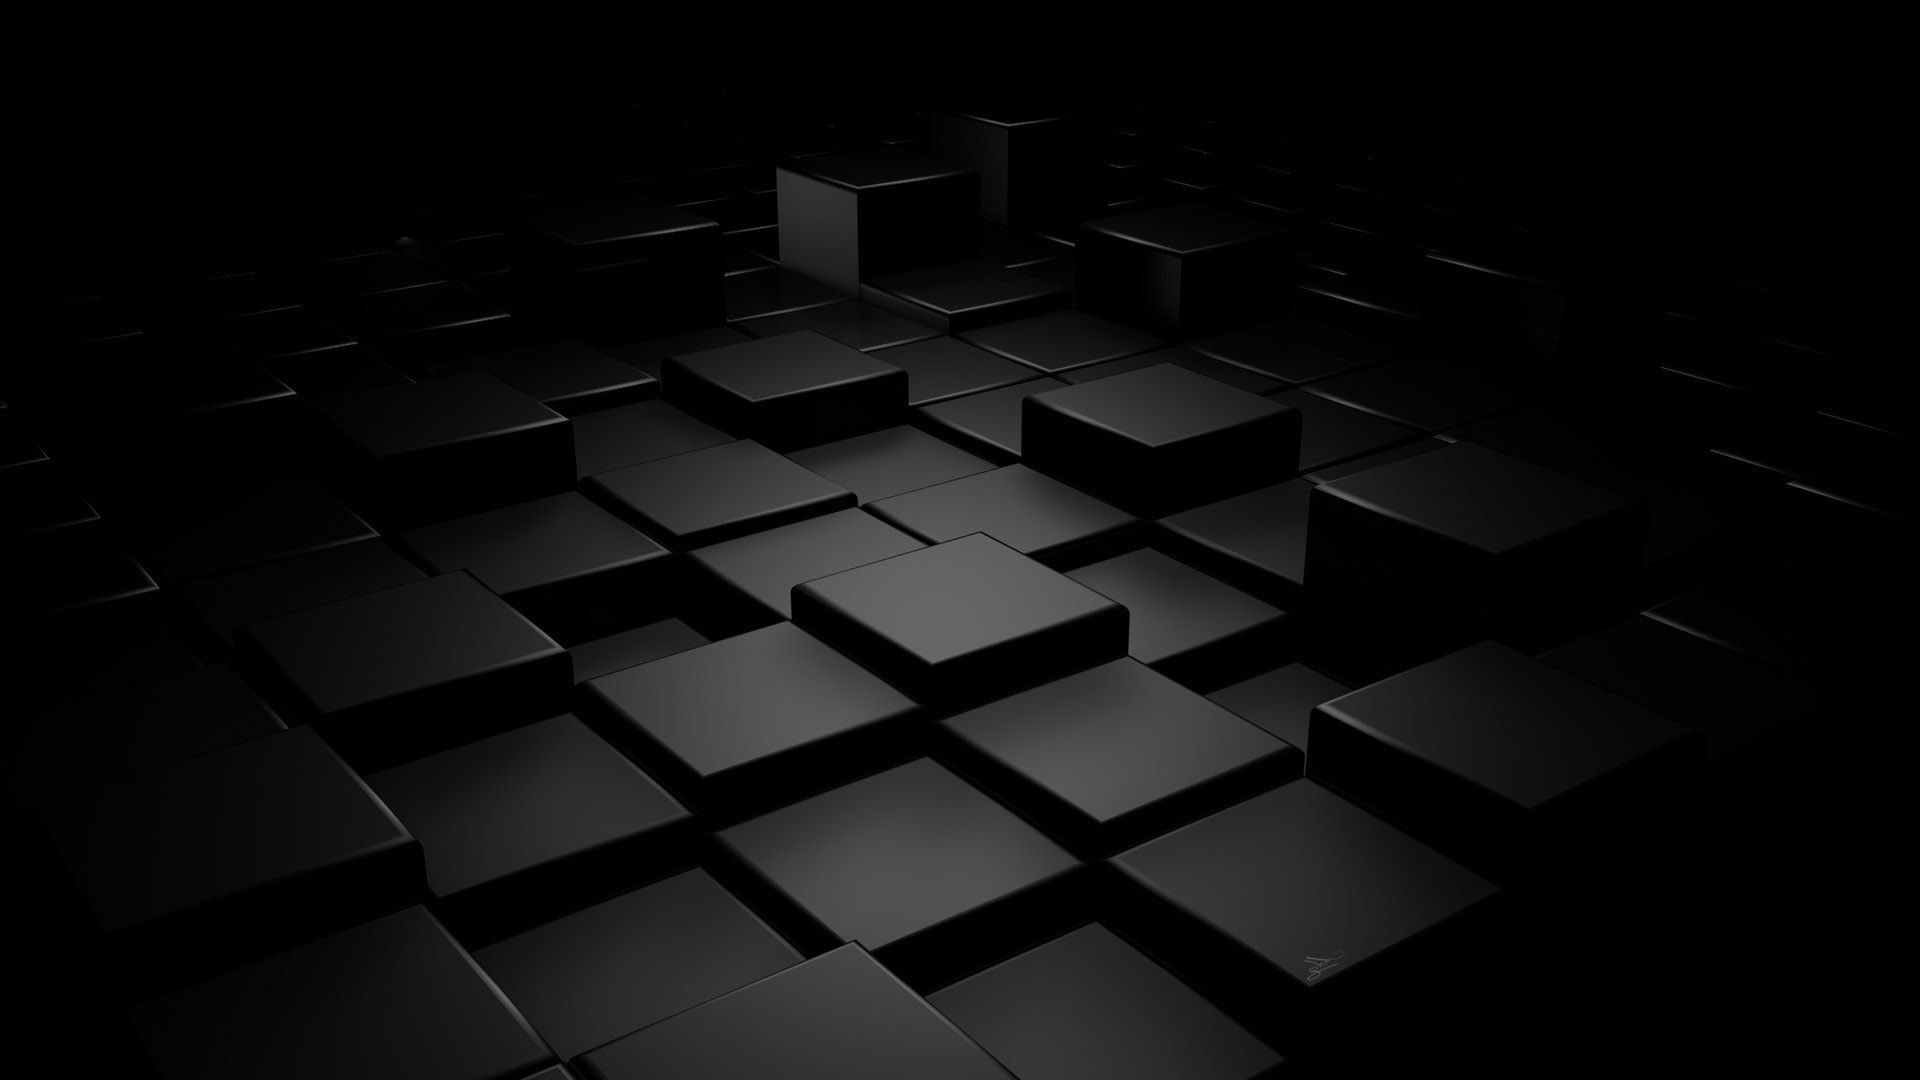 Black abstract wallpapers images photos pictures backgrounds - Wallpaper photos ...